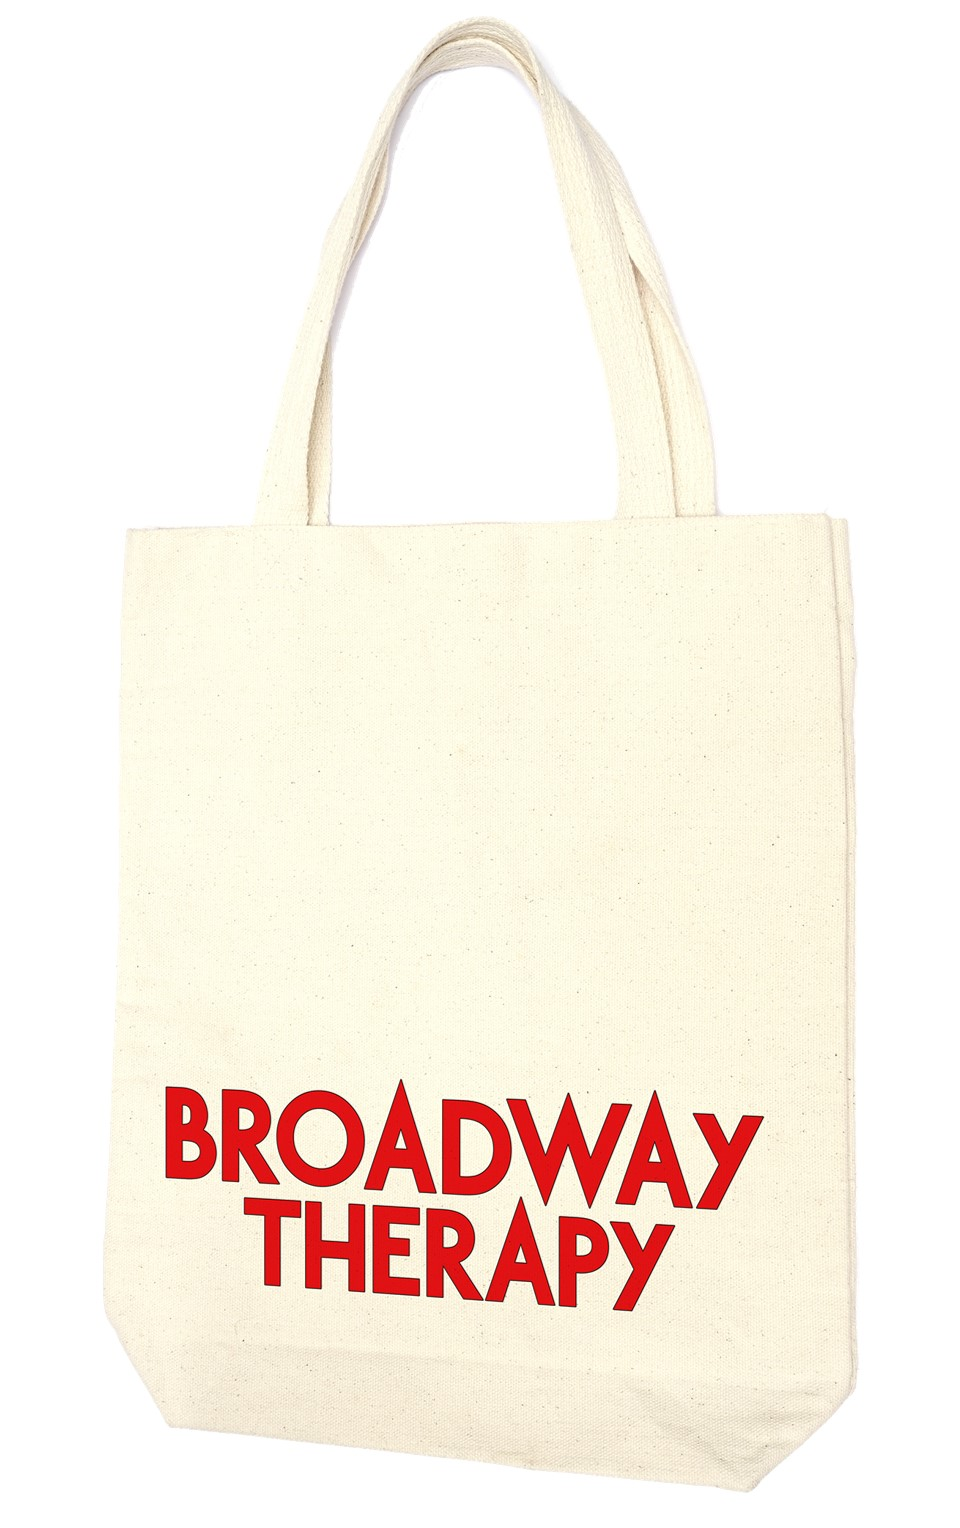 BROADWAY THERAPY - Tote bags sacs concours à gagner - Go with the Blog